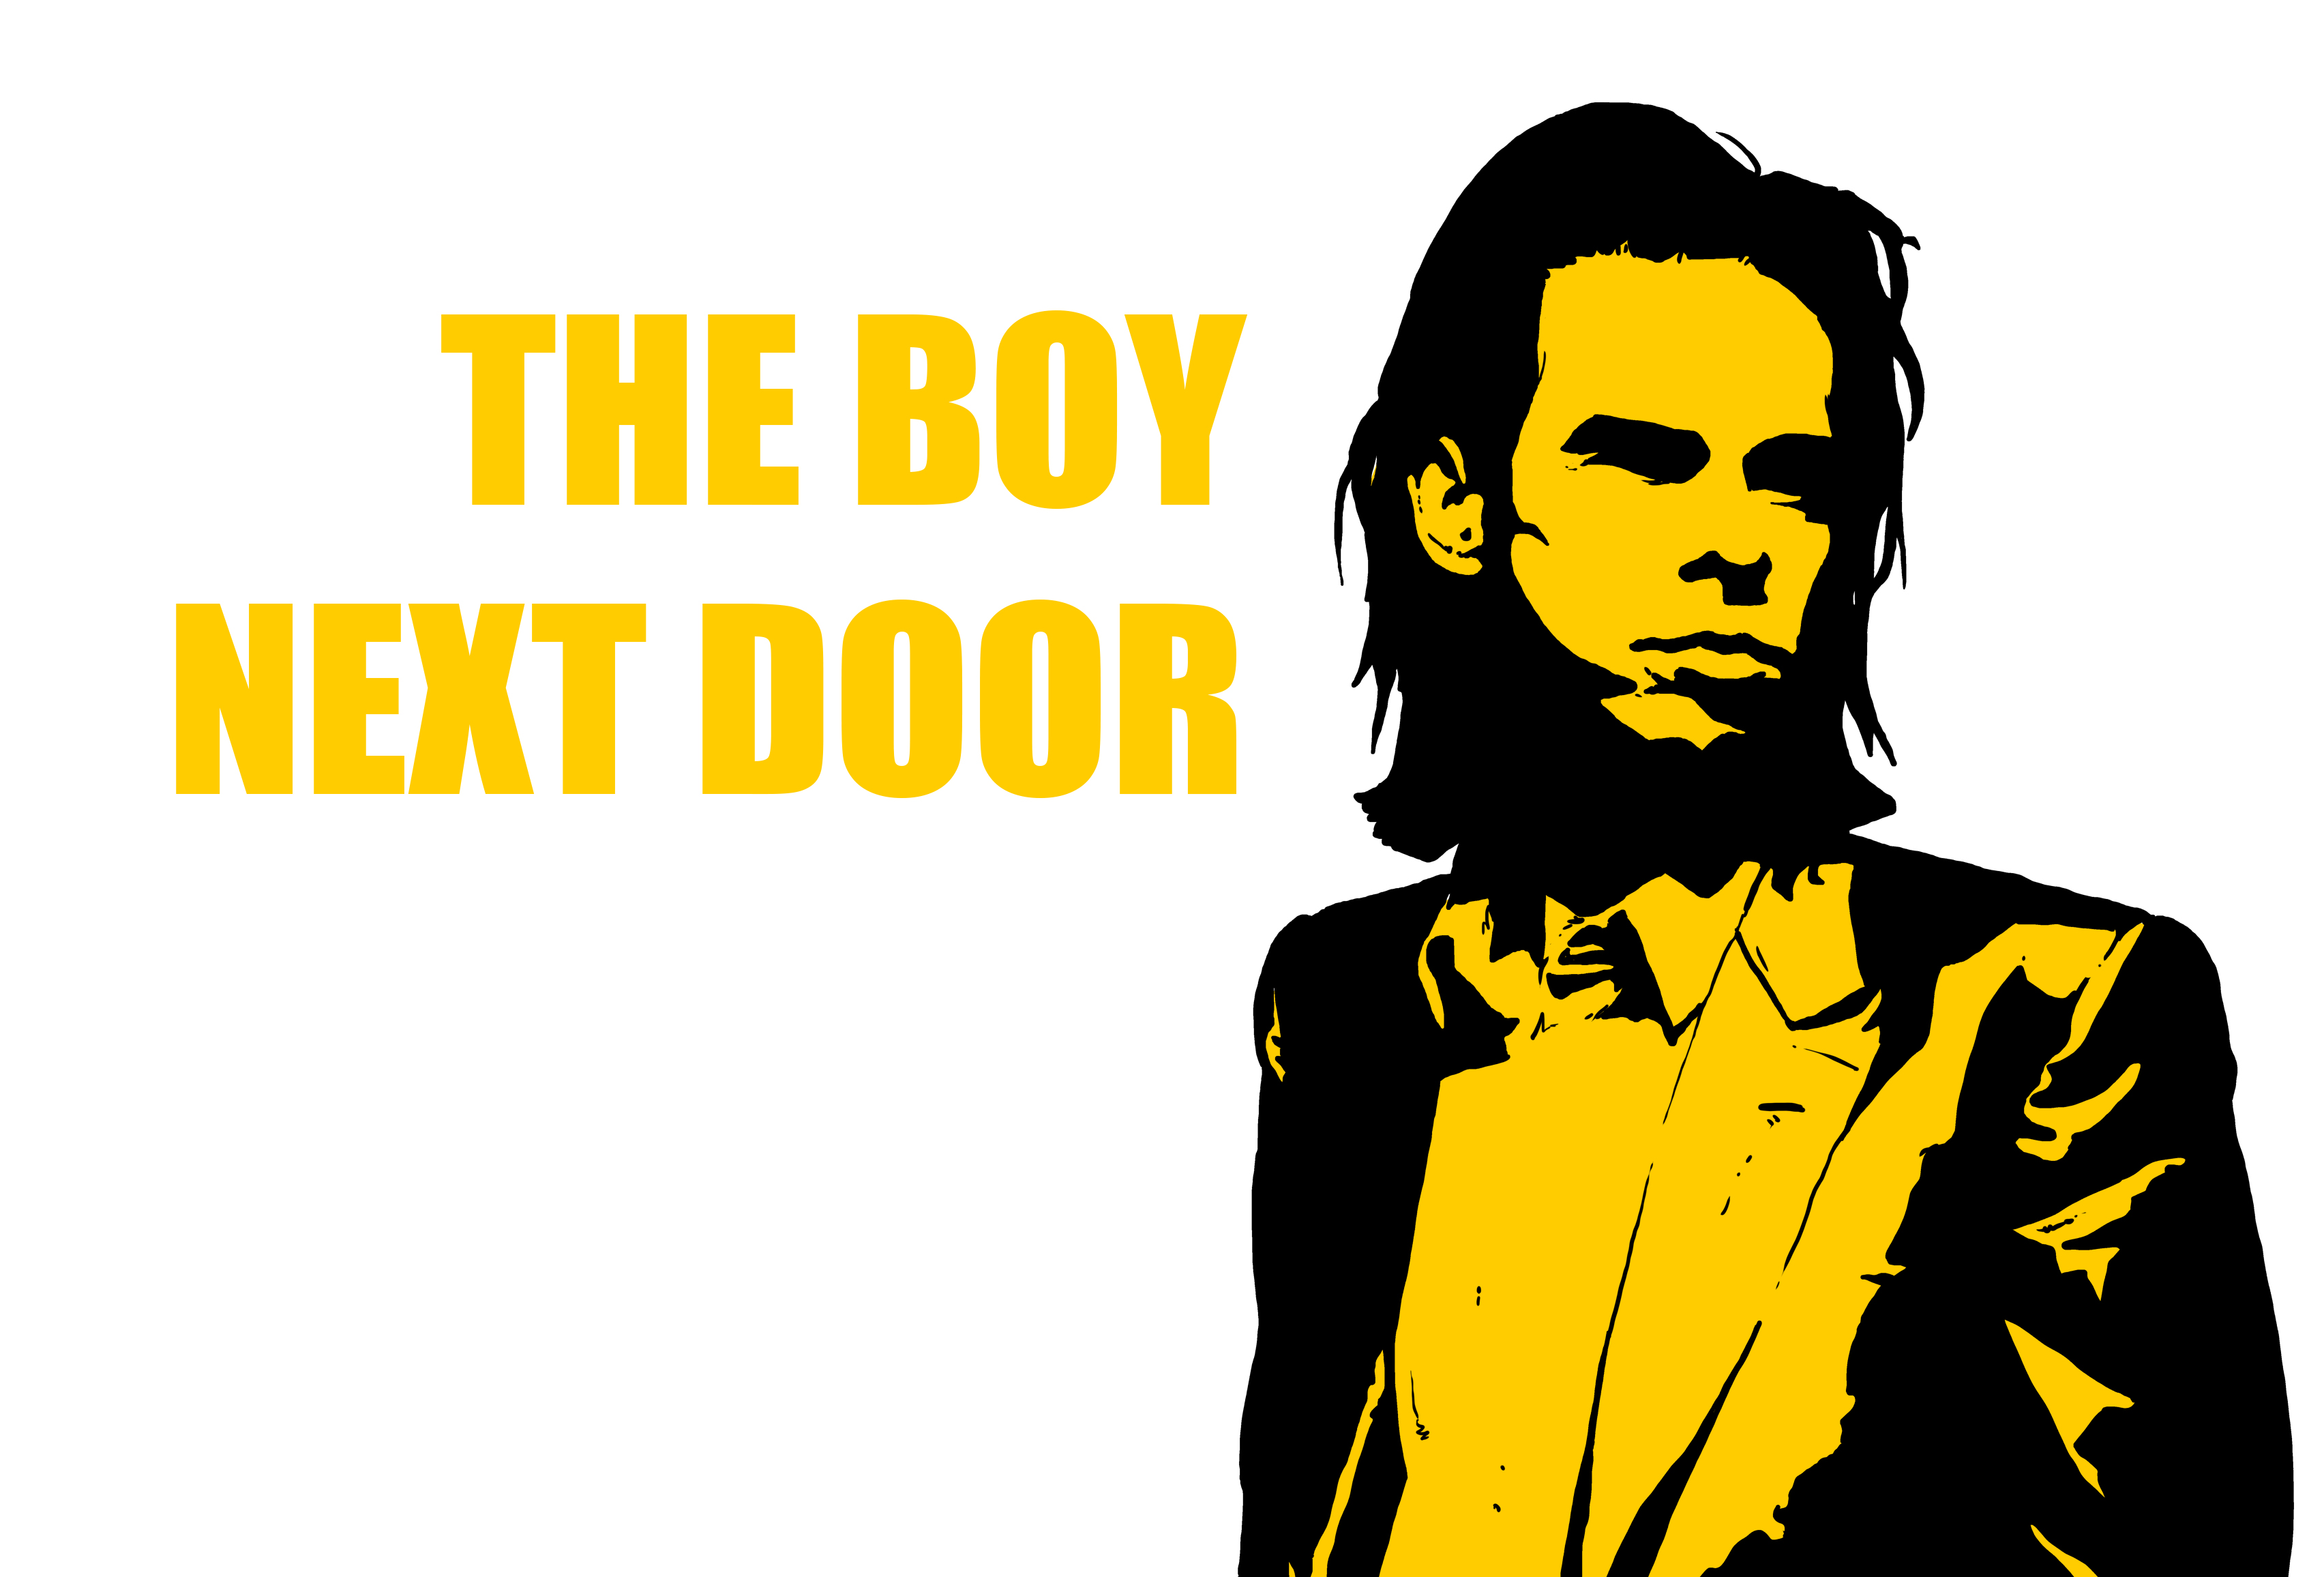 The Boy Next Door - Celebrating Nick Cave